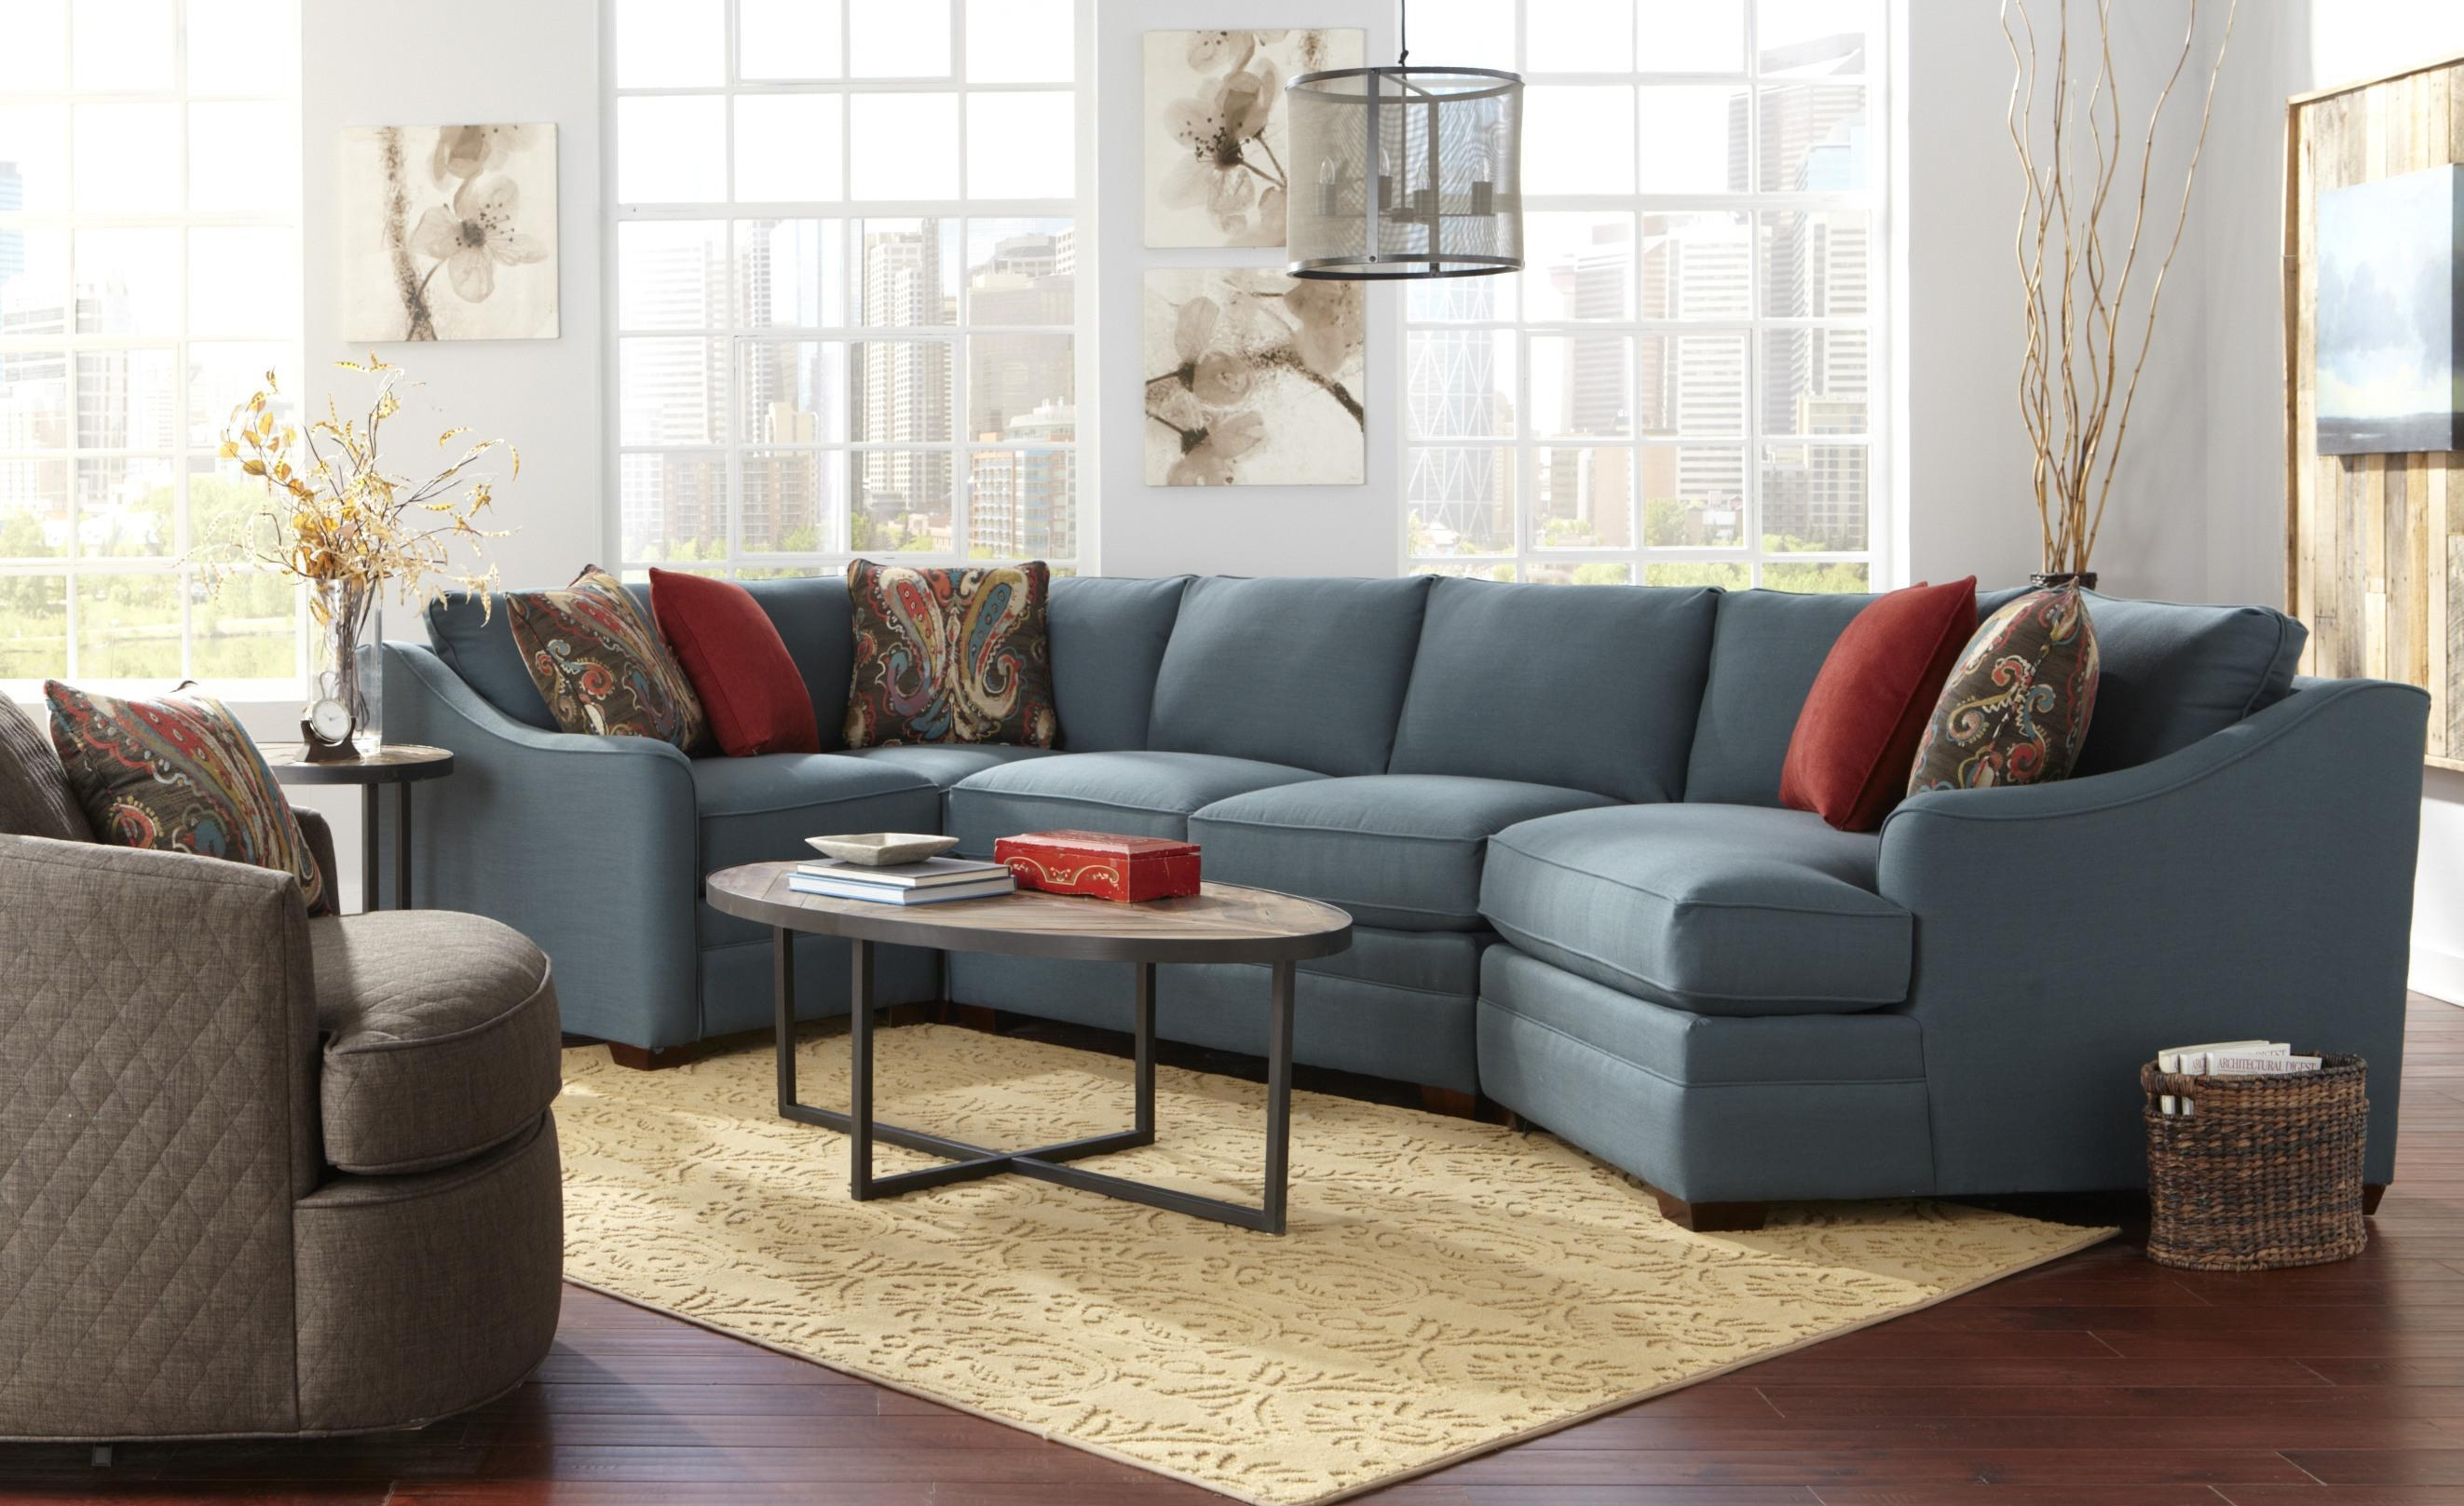 Cozy Life F9 Custom Collection Dancer 3 Piece Sectional W/ Raf Inside Sectional Cuddler (Photo 12 of 20)